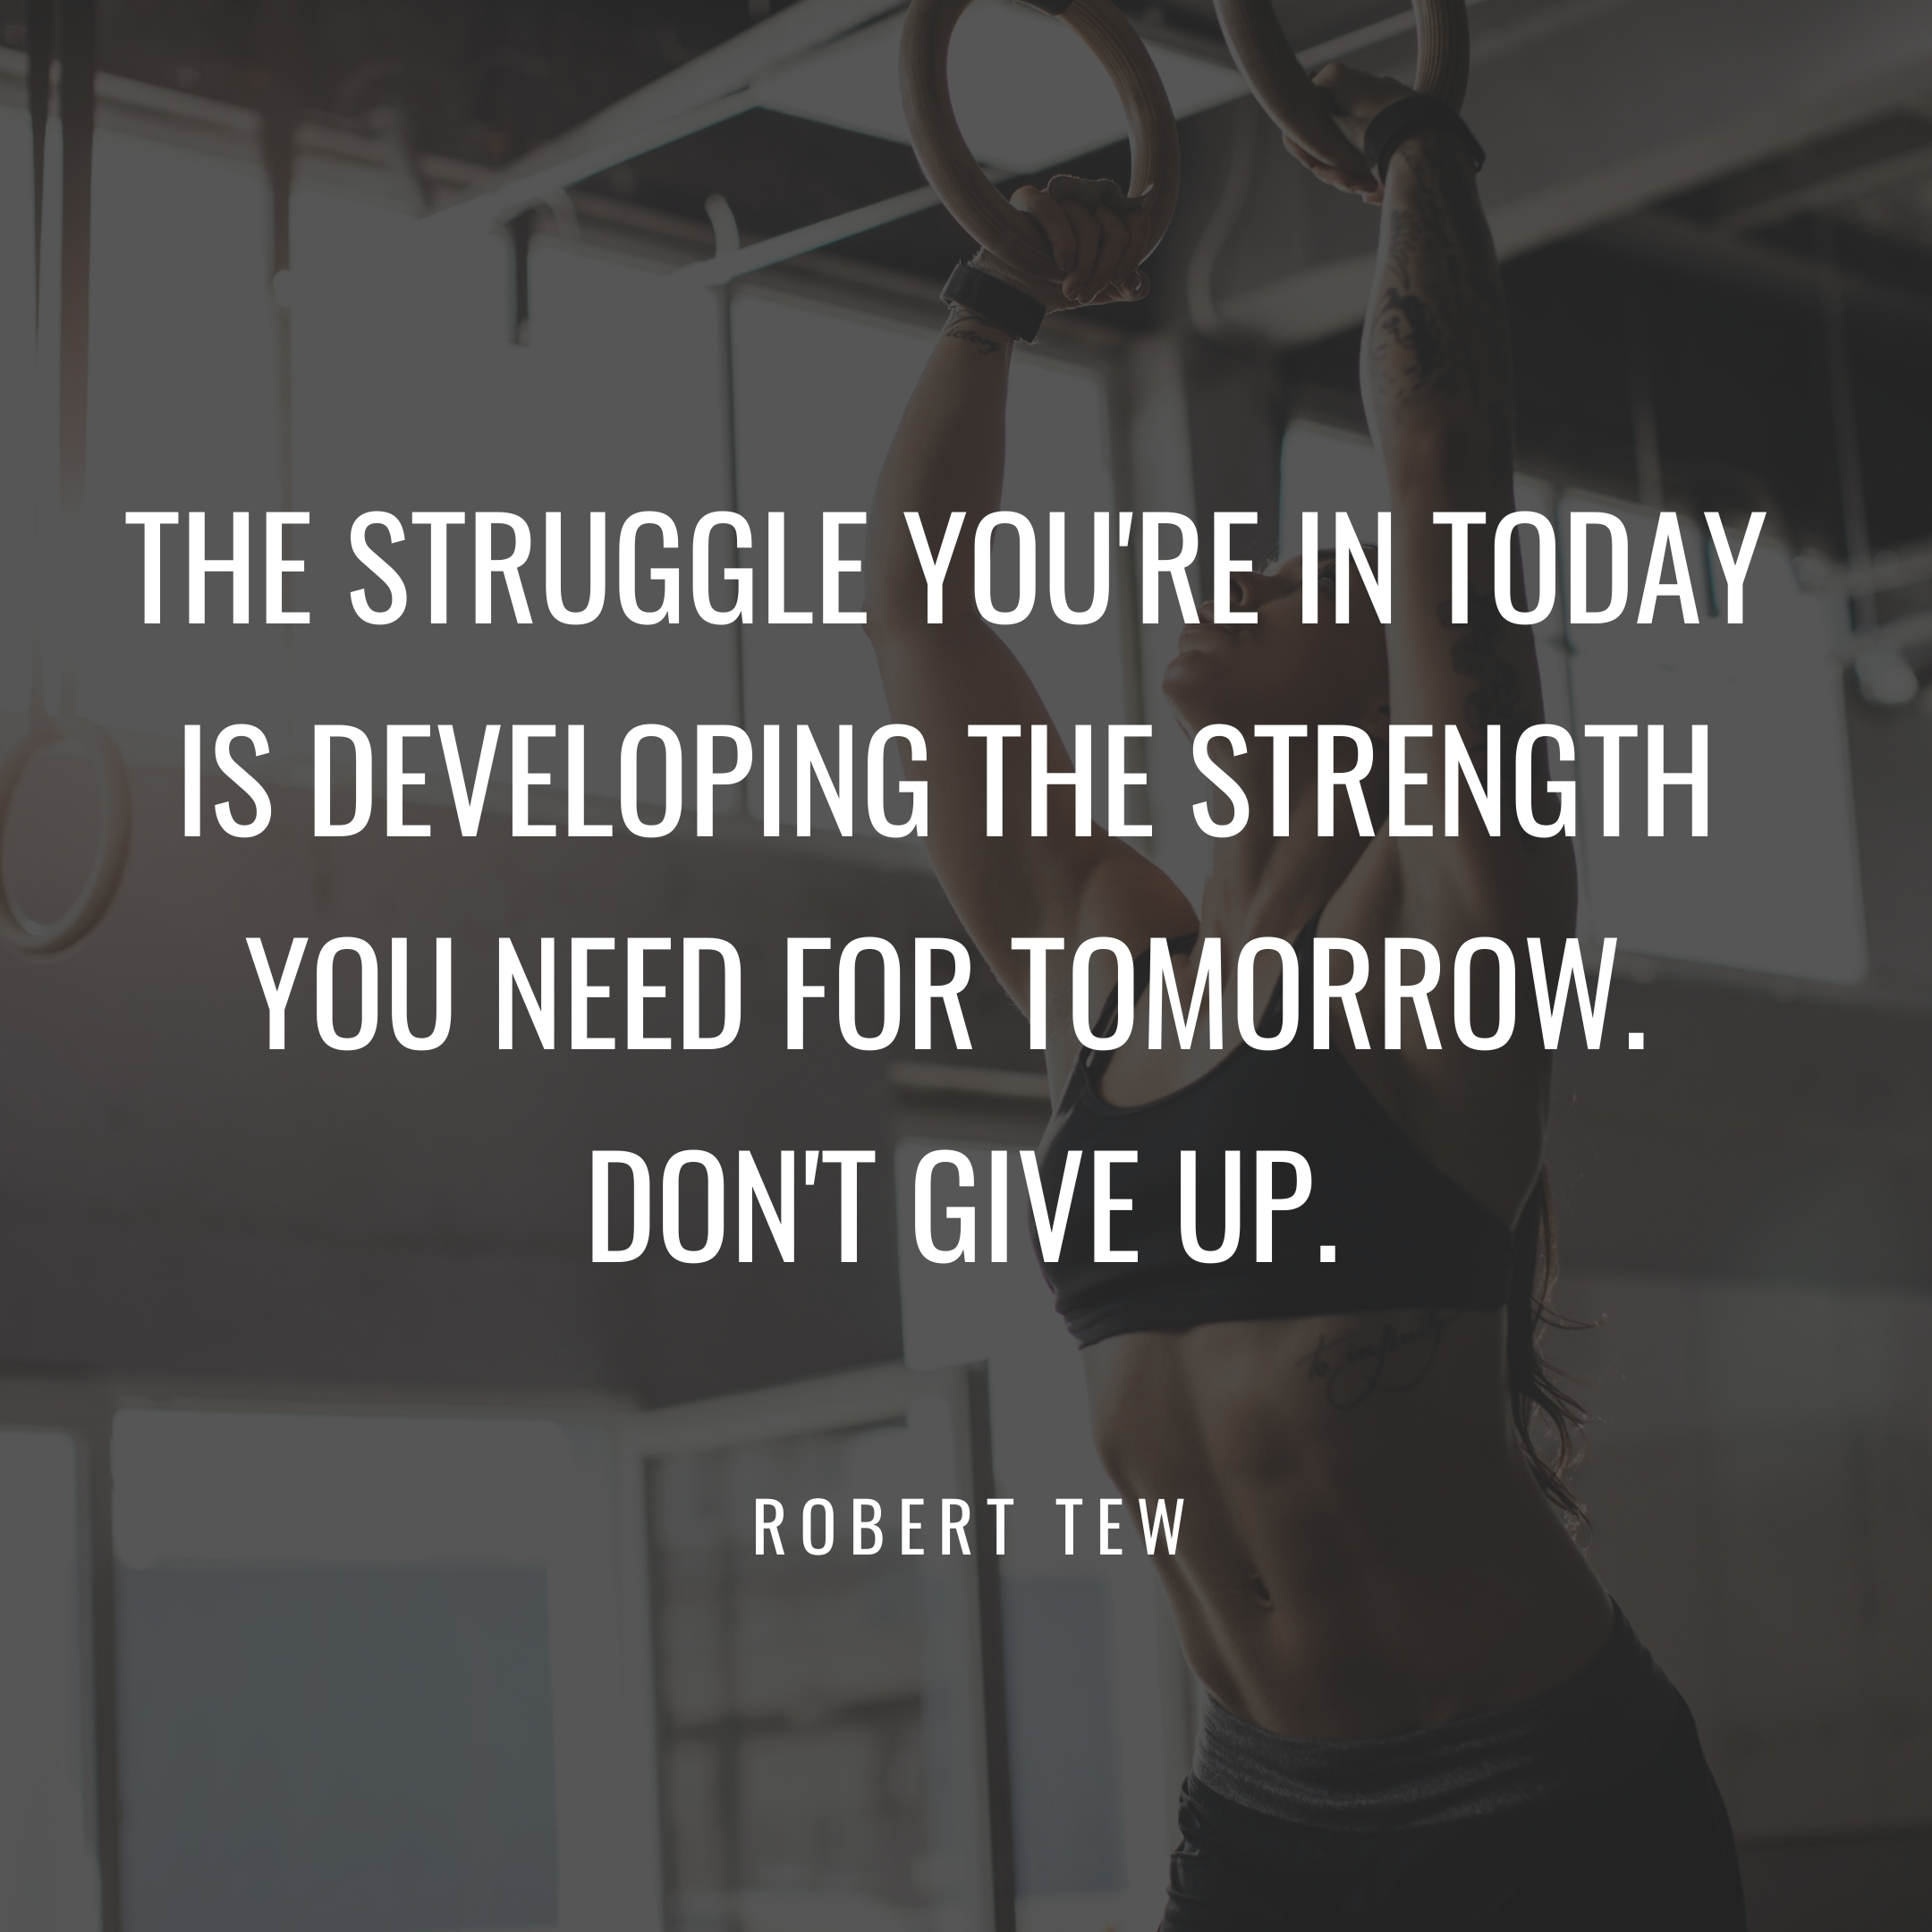 robert tew quote   daily motivation